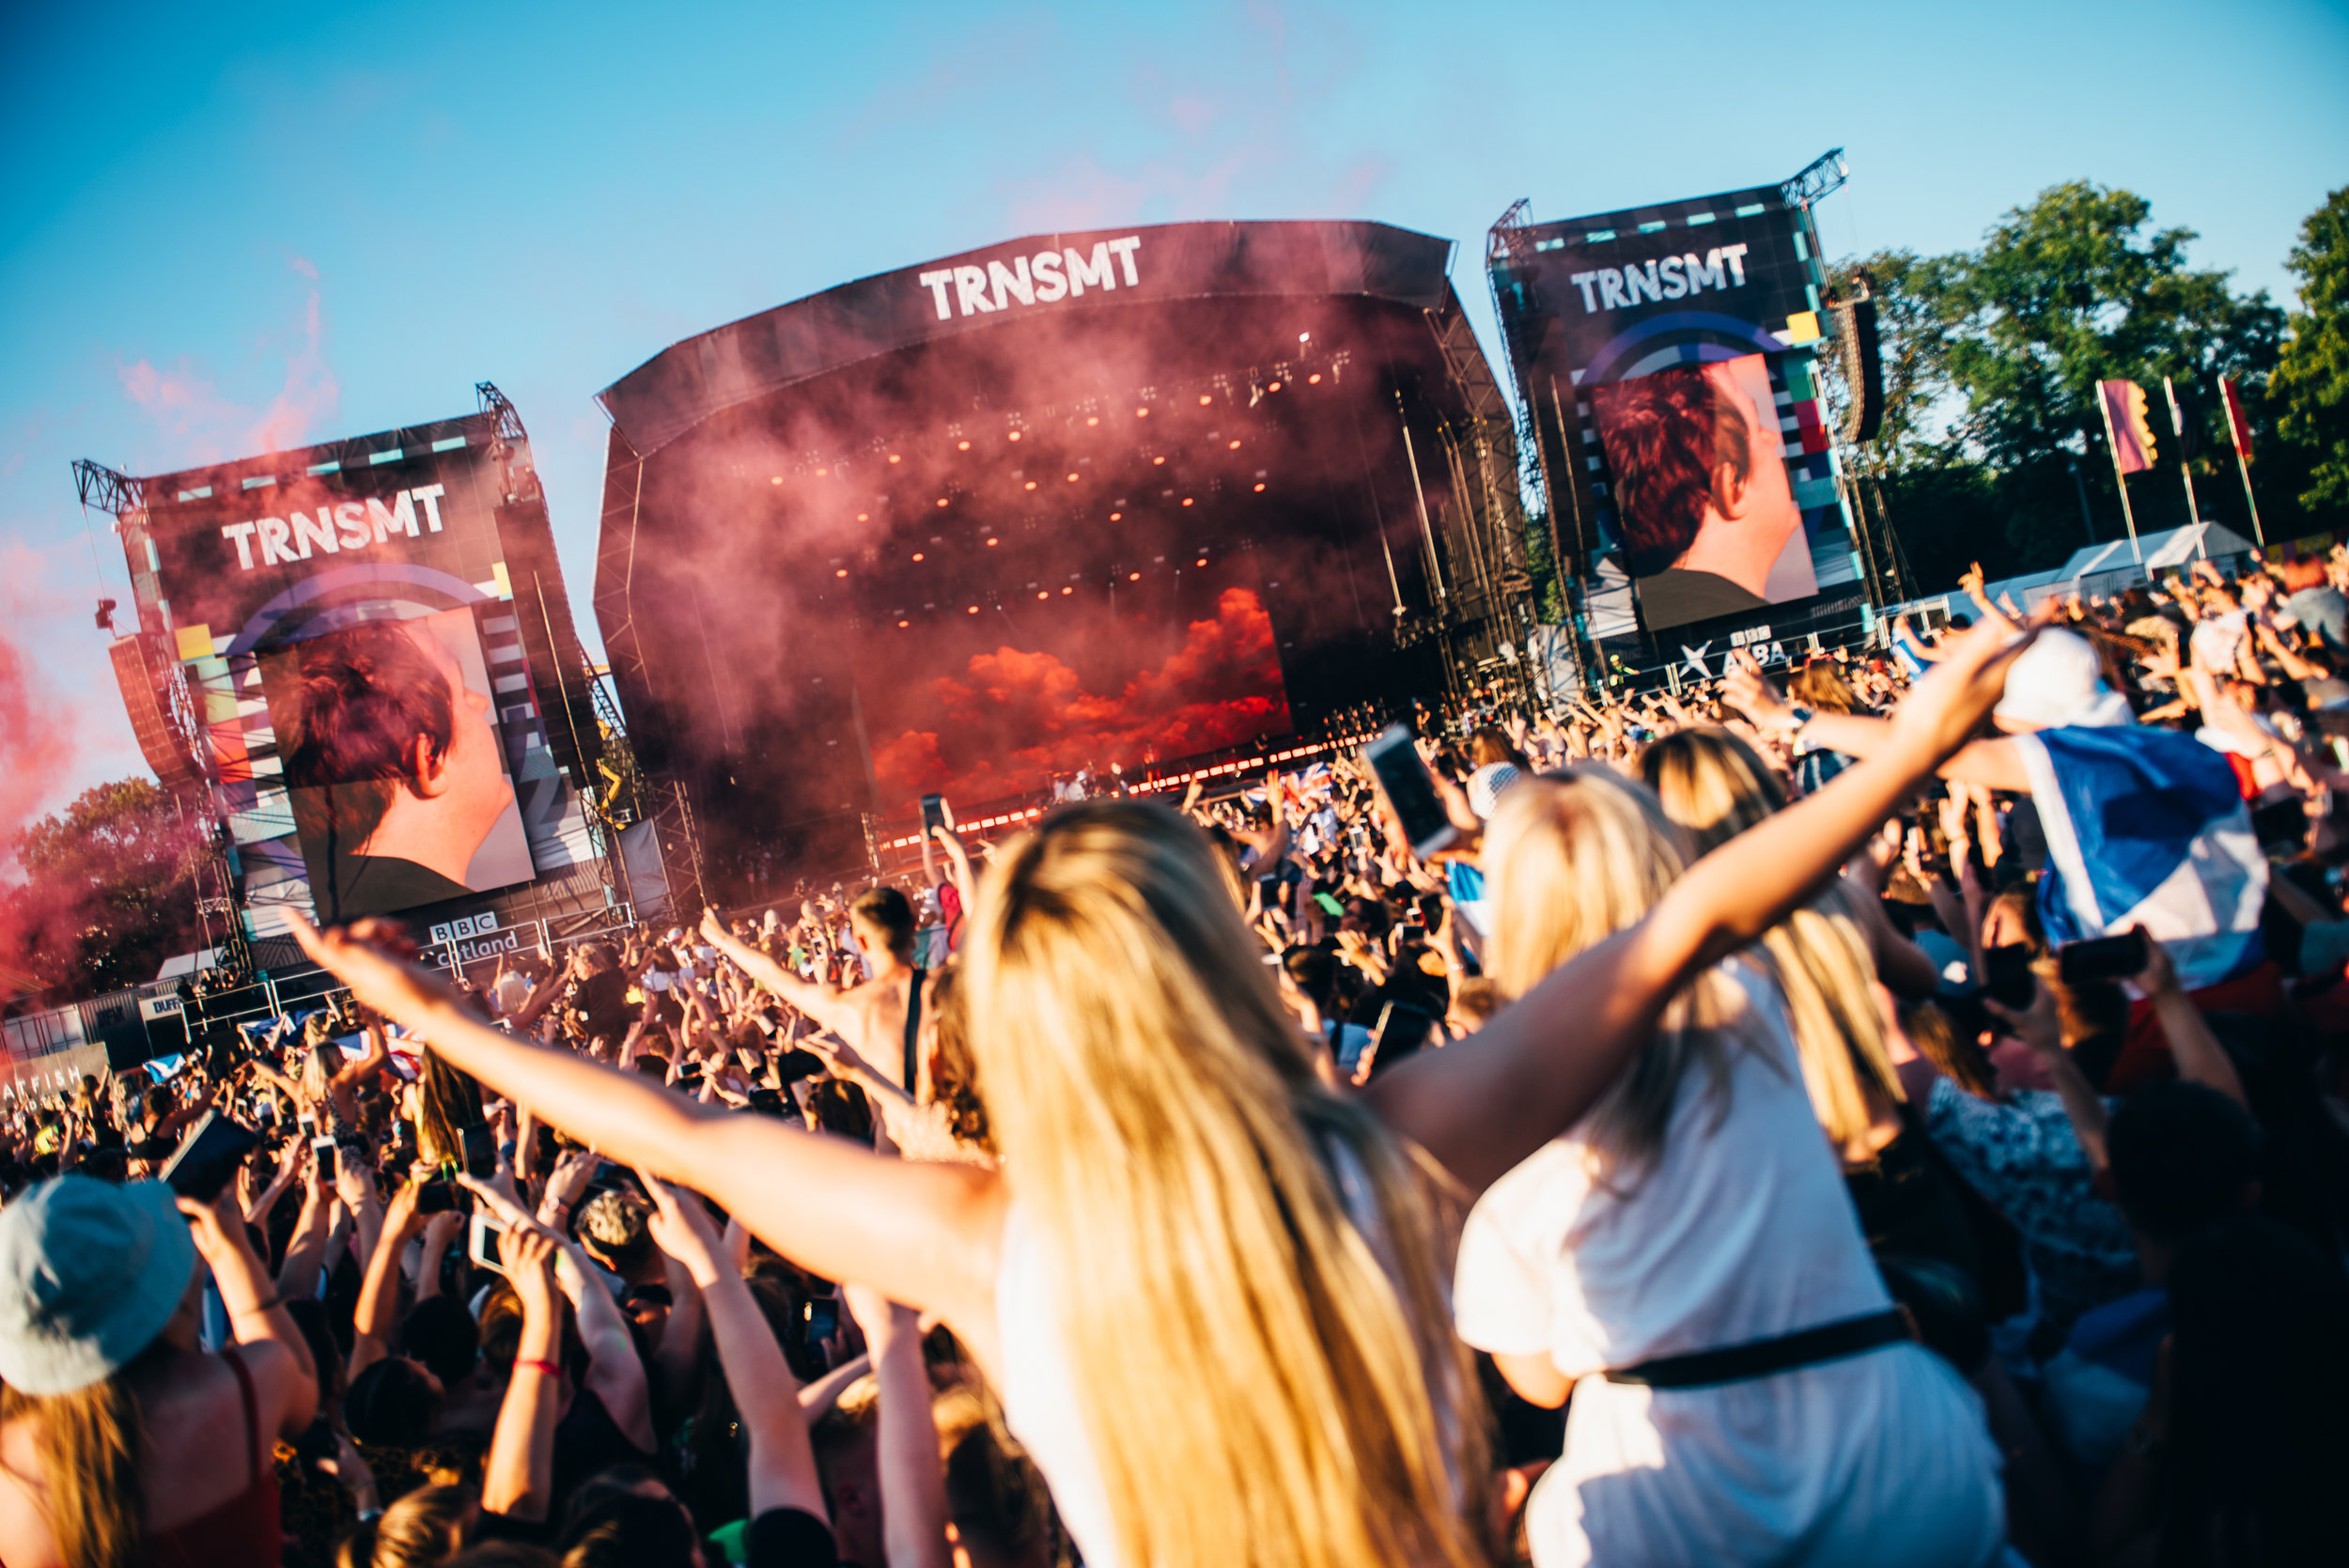 LEWIS CAPALDI PERFORMING AT TRNMST FESTIVAL 2019  PICTURE BY: RYAN JOHNSTON